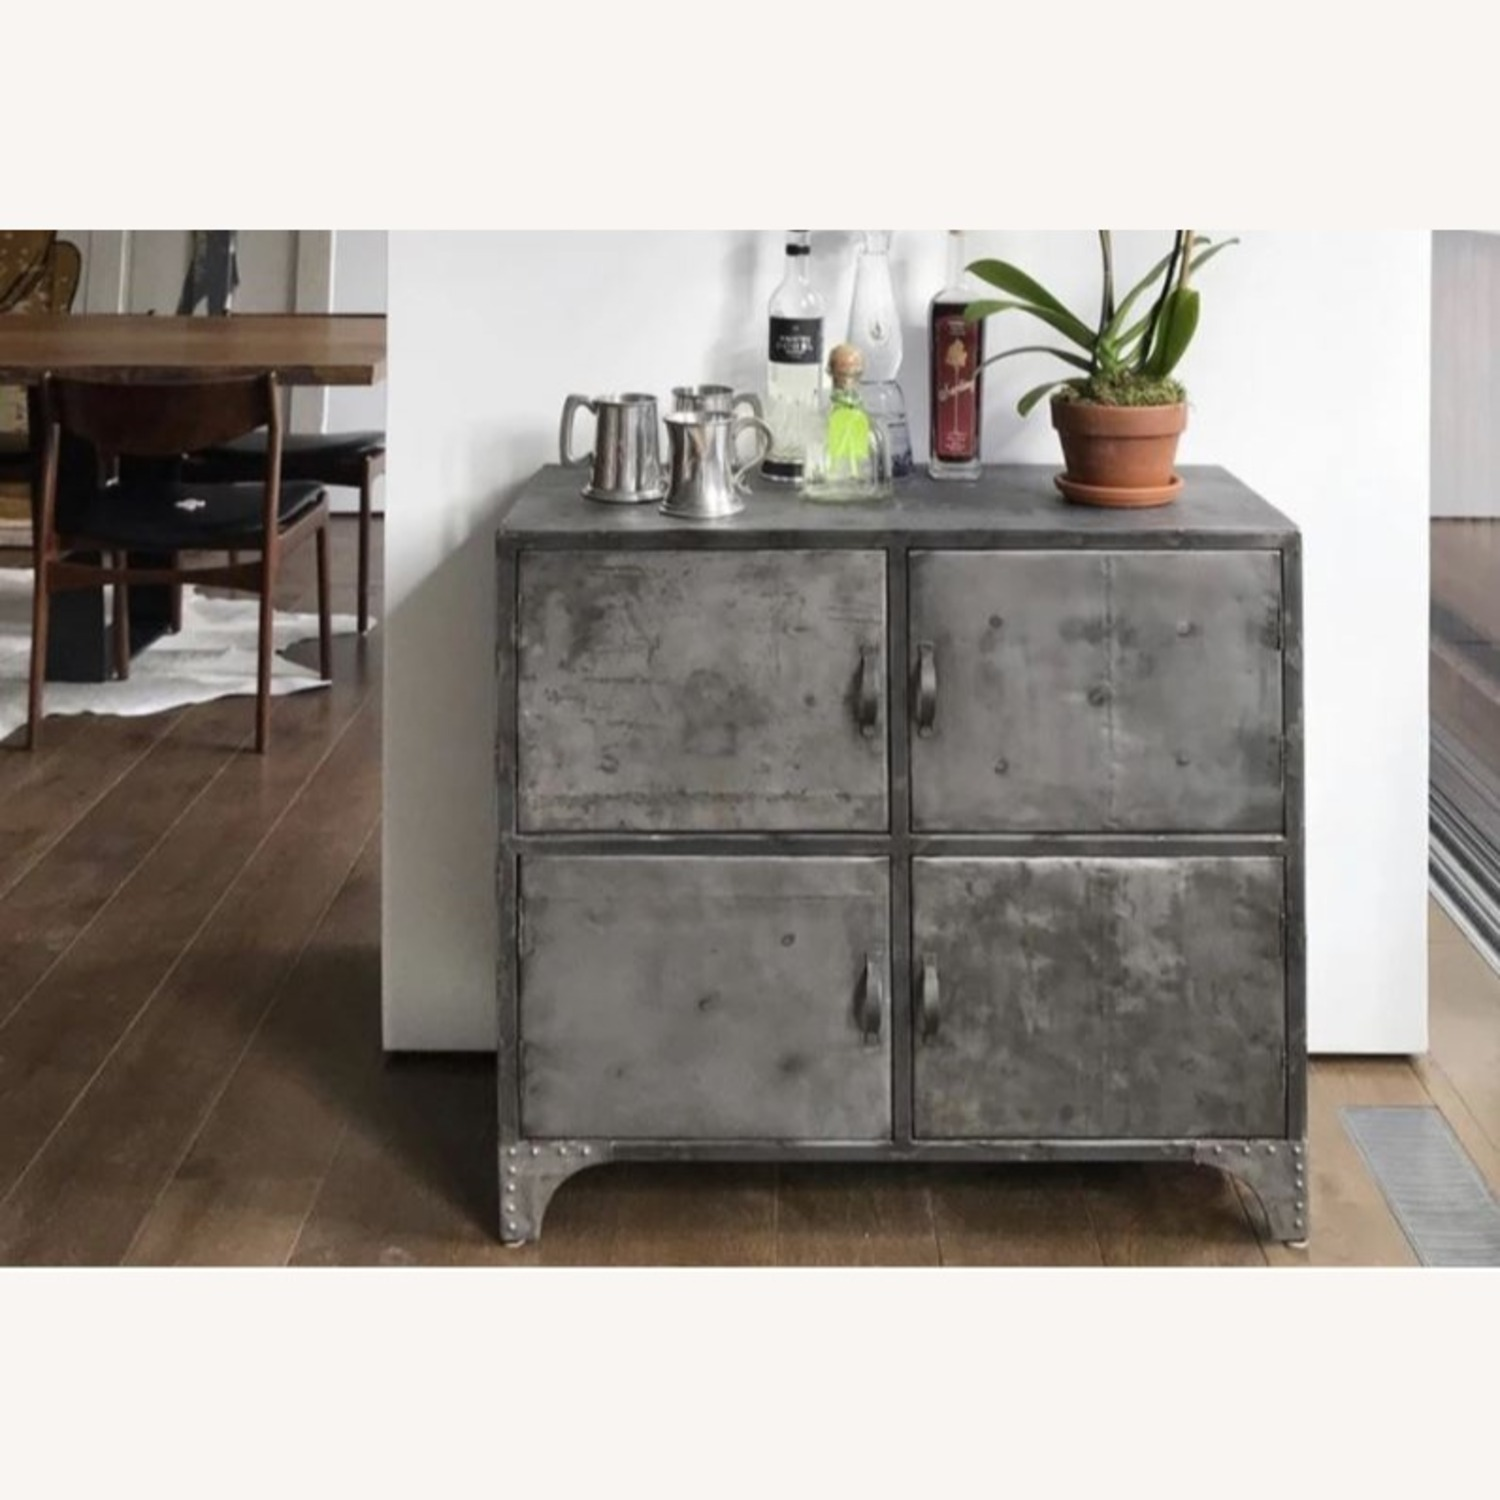 From The Source Recycled Oil Drum 4-Door Designer Cabinet - image-1